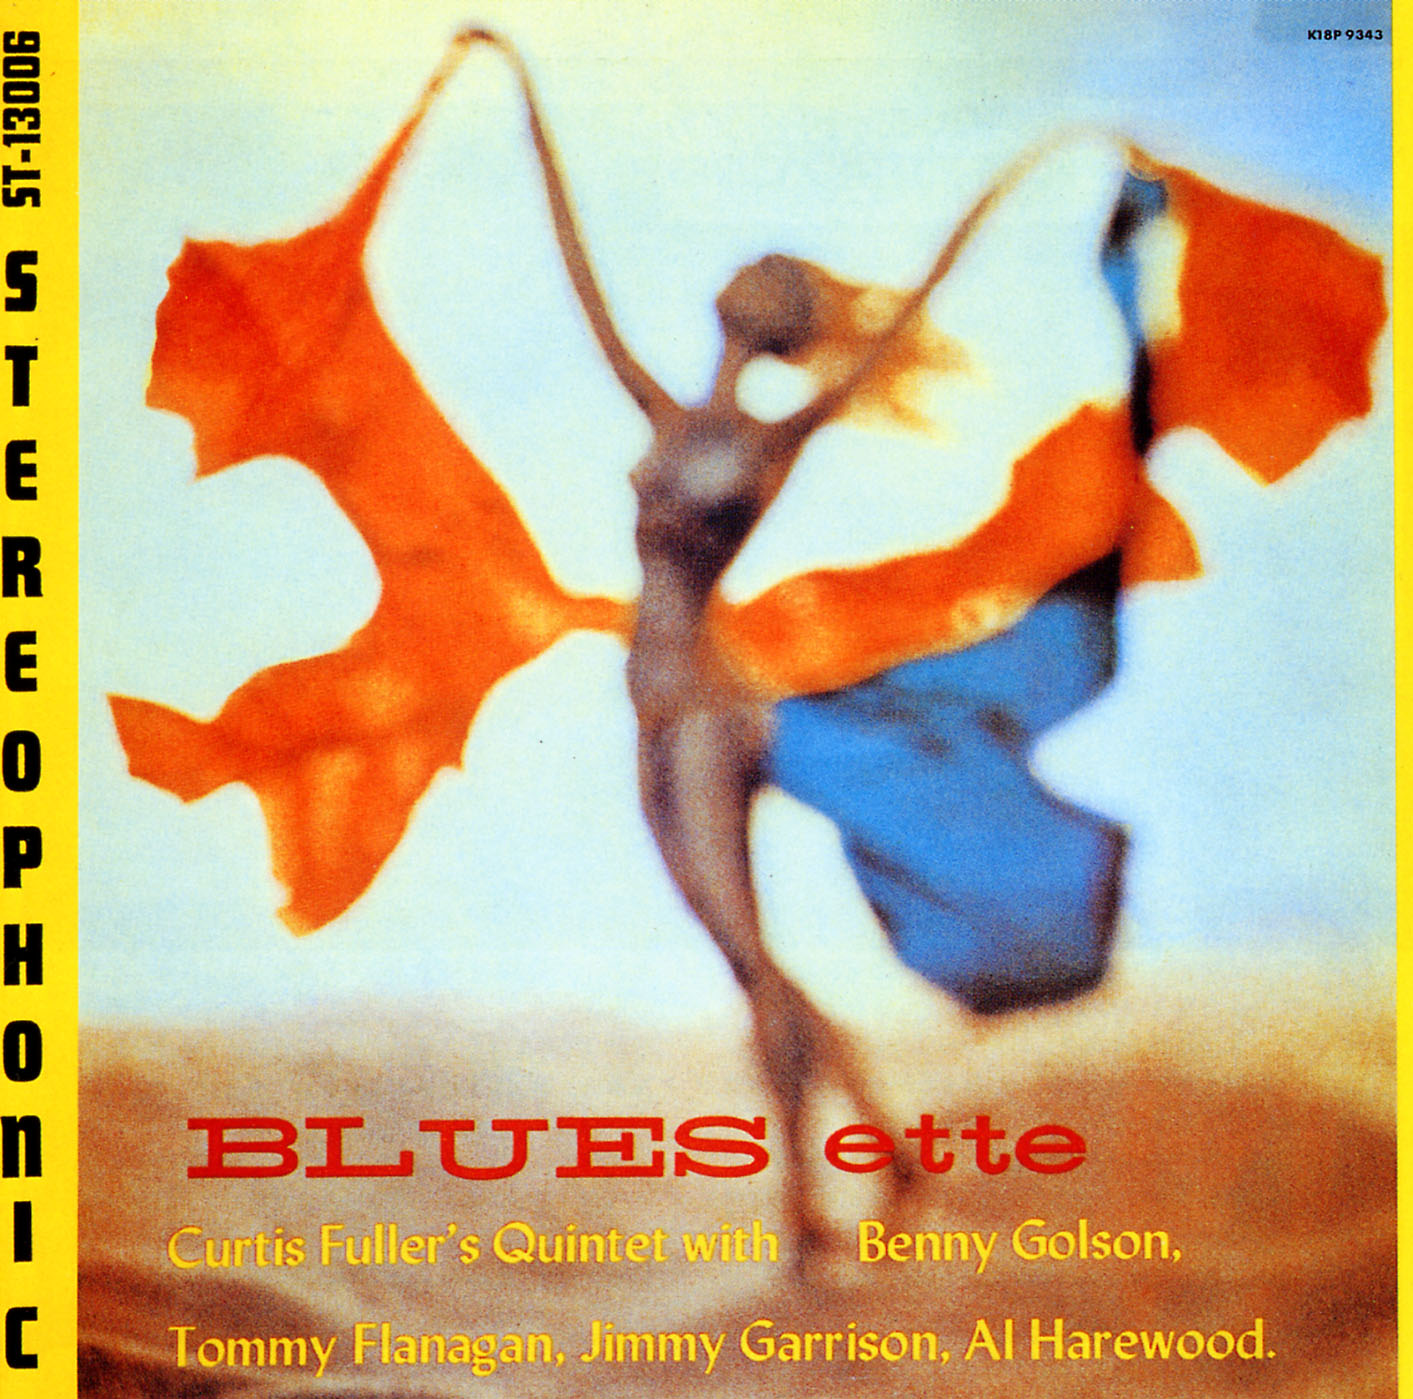 curtis fuller - blues-ette (album art)